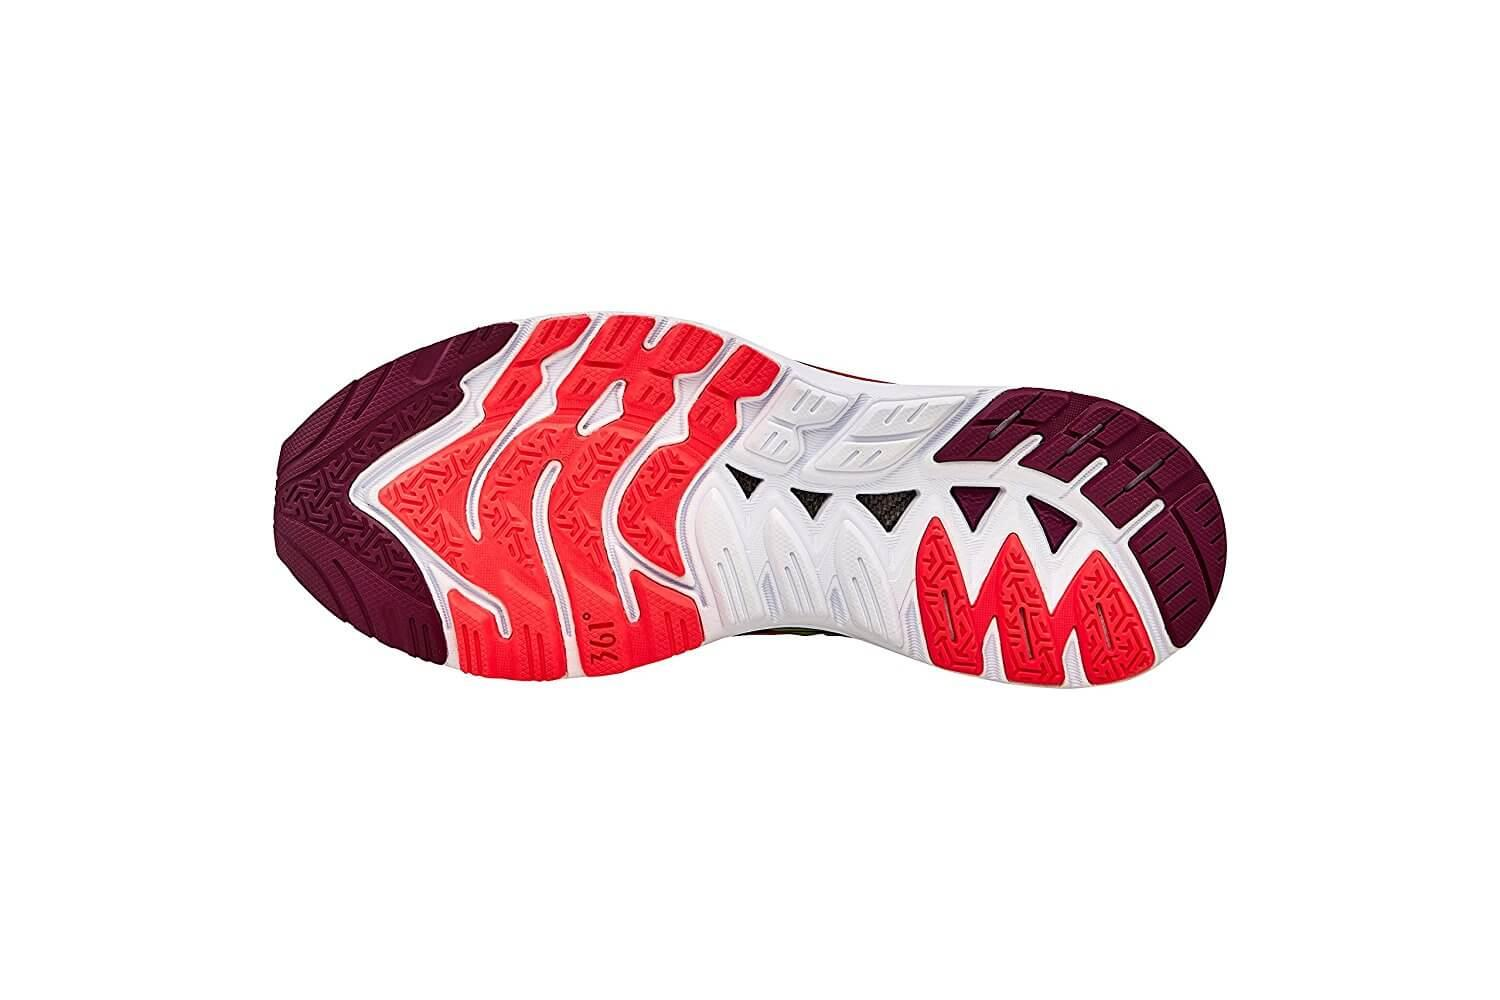 The outsole of high abrasion rubber offers reliable traction